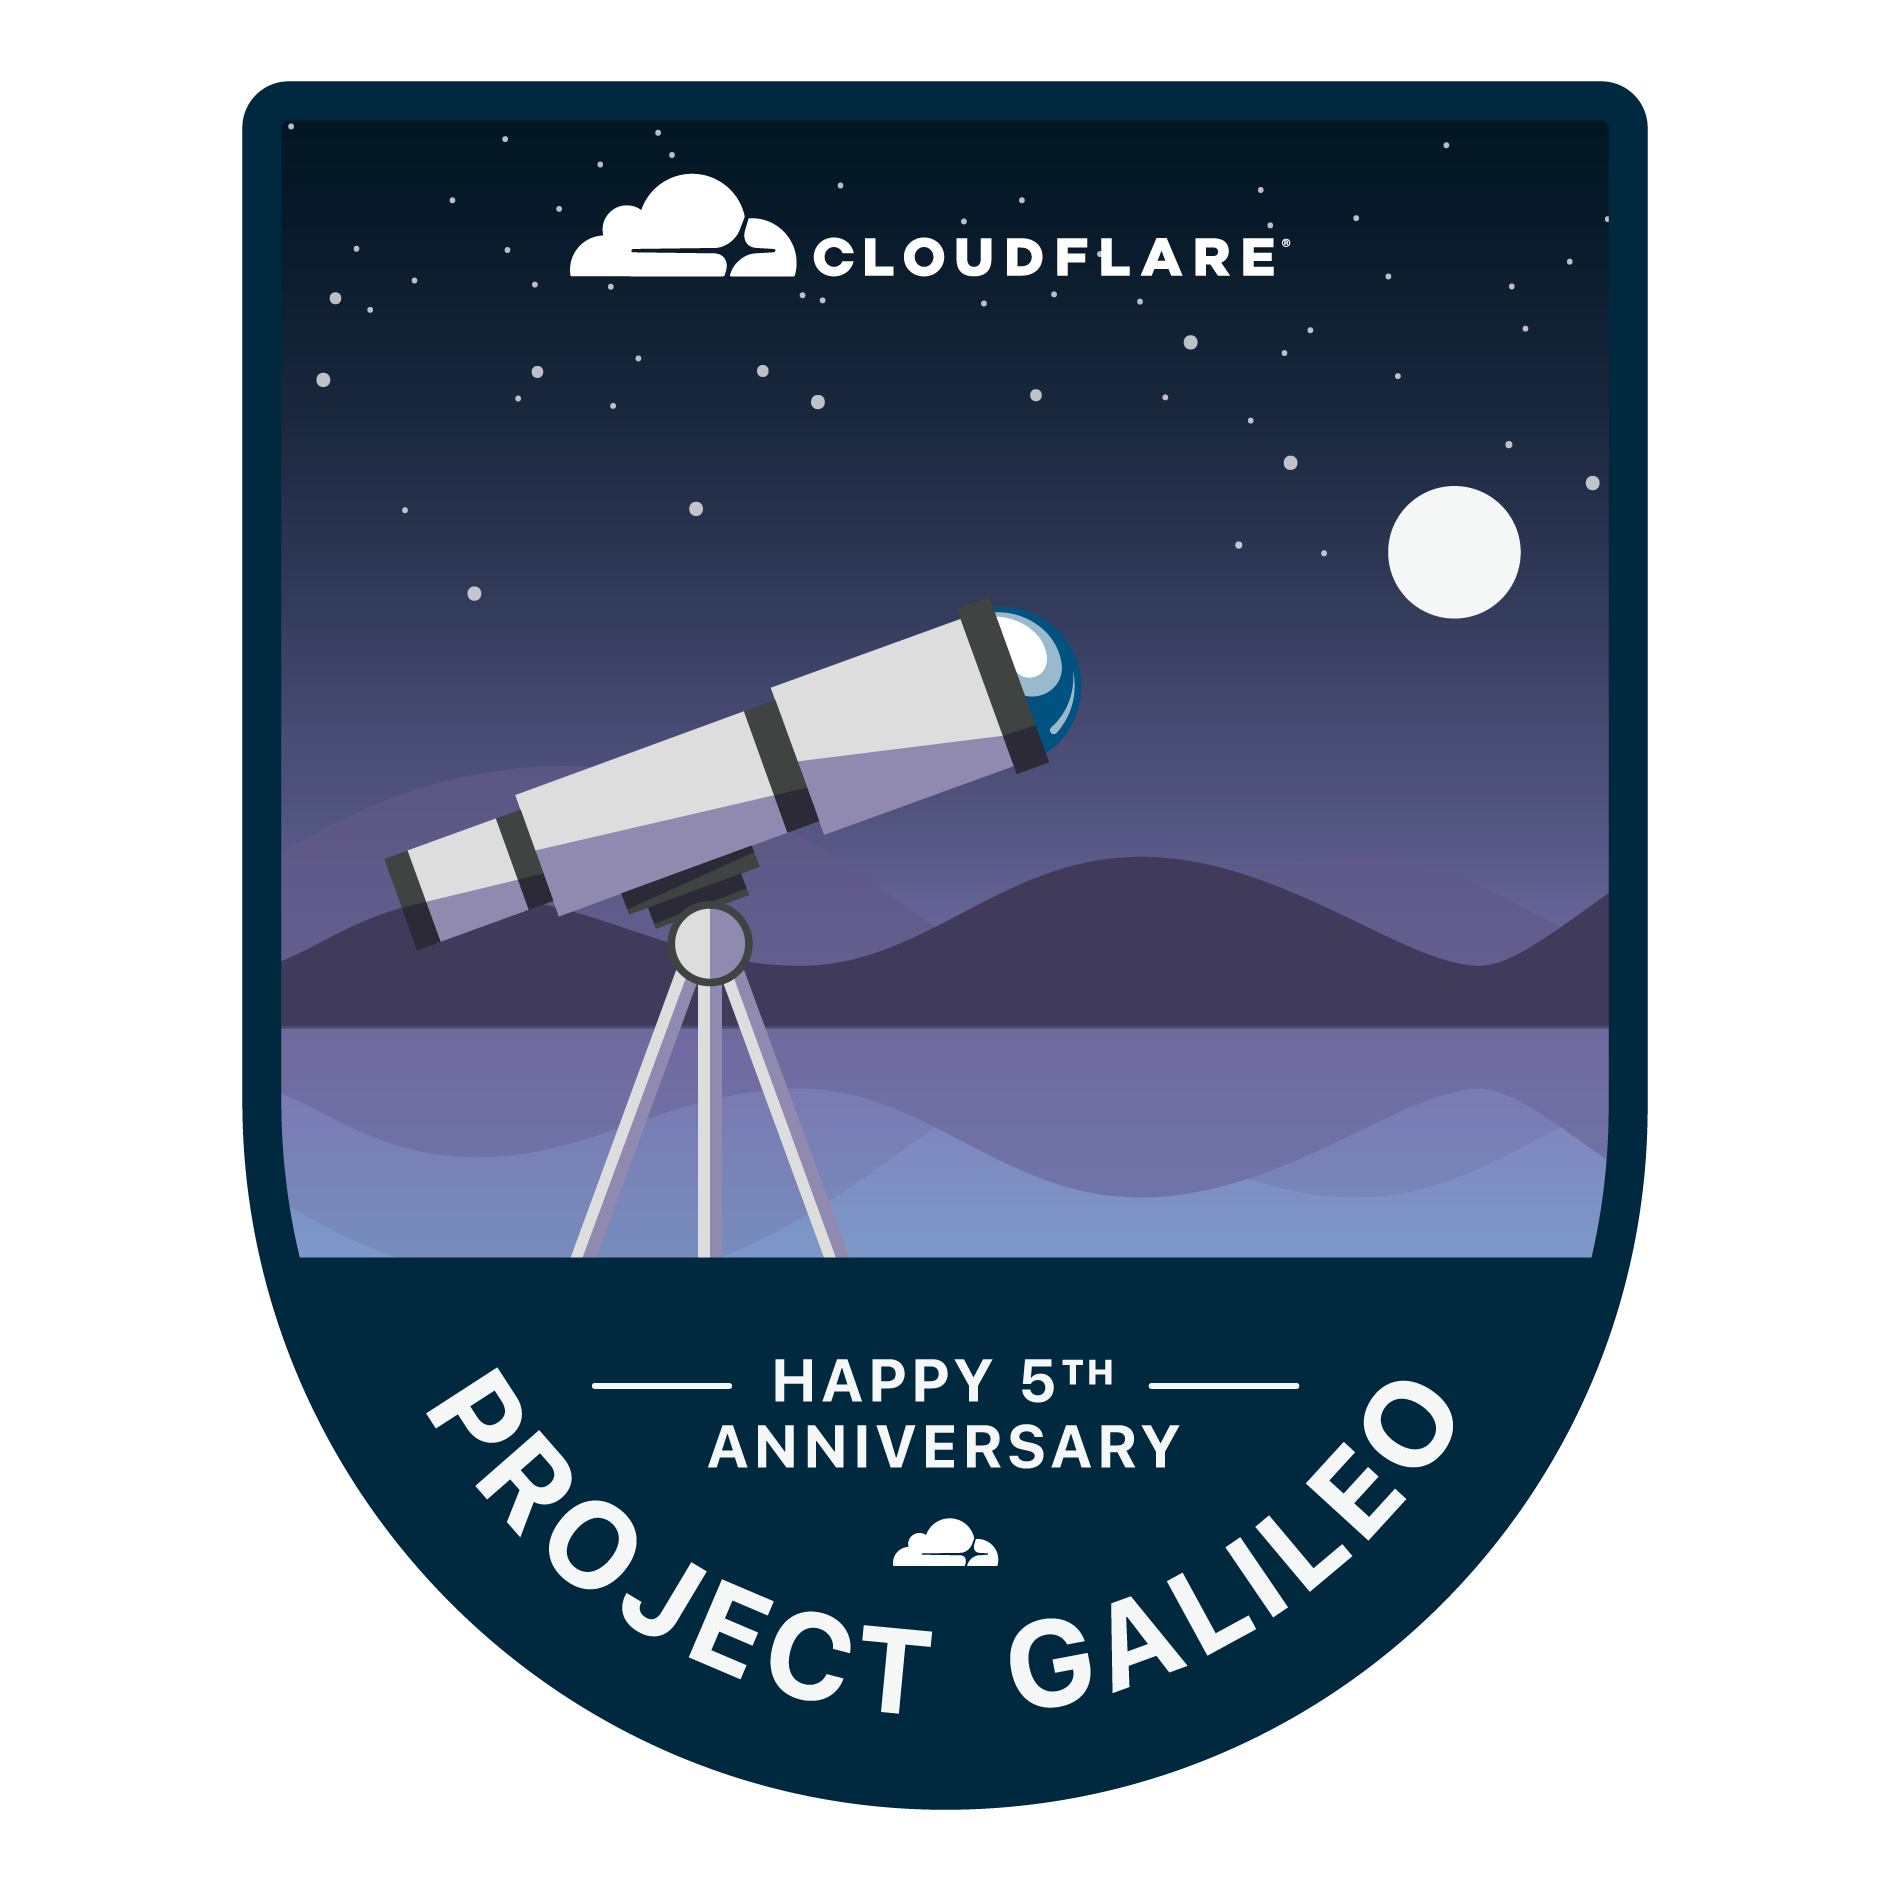 Project Galileo: Lessons from 5 years of protecting the most vulnerable online